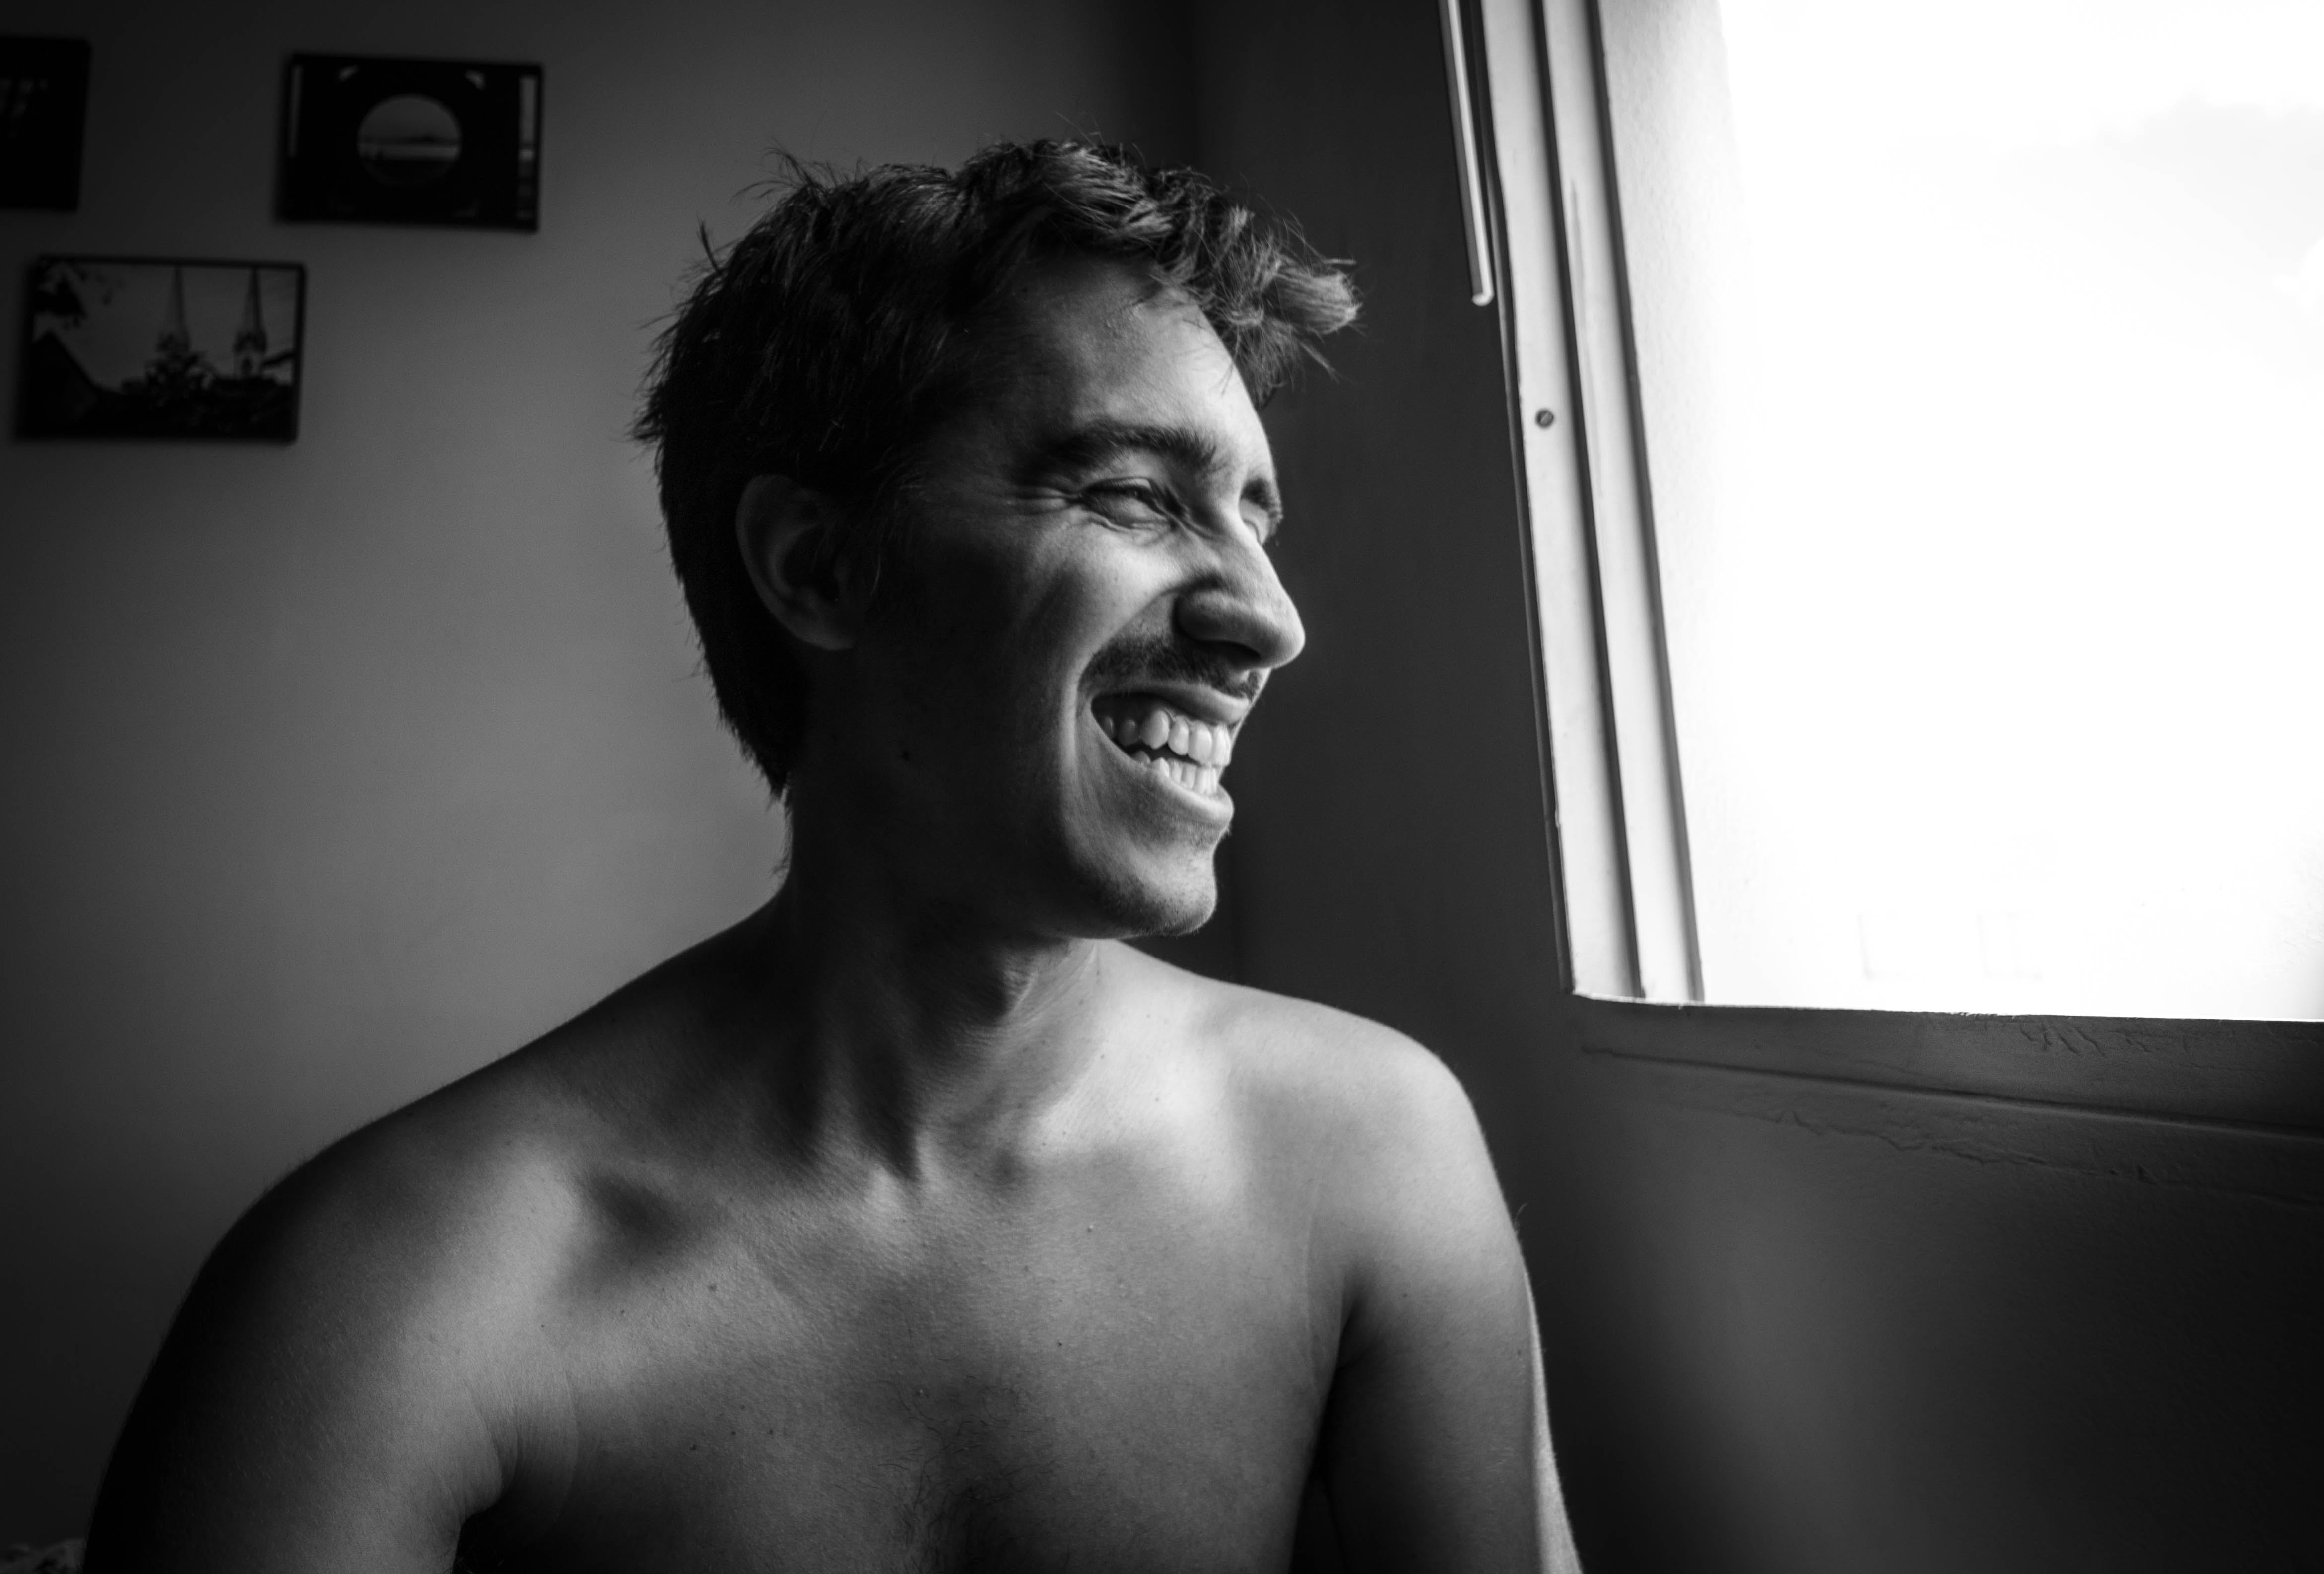 Grayscale Photography Of Smiling Man